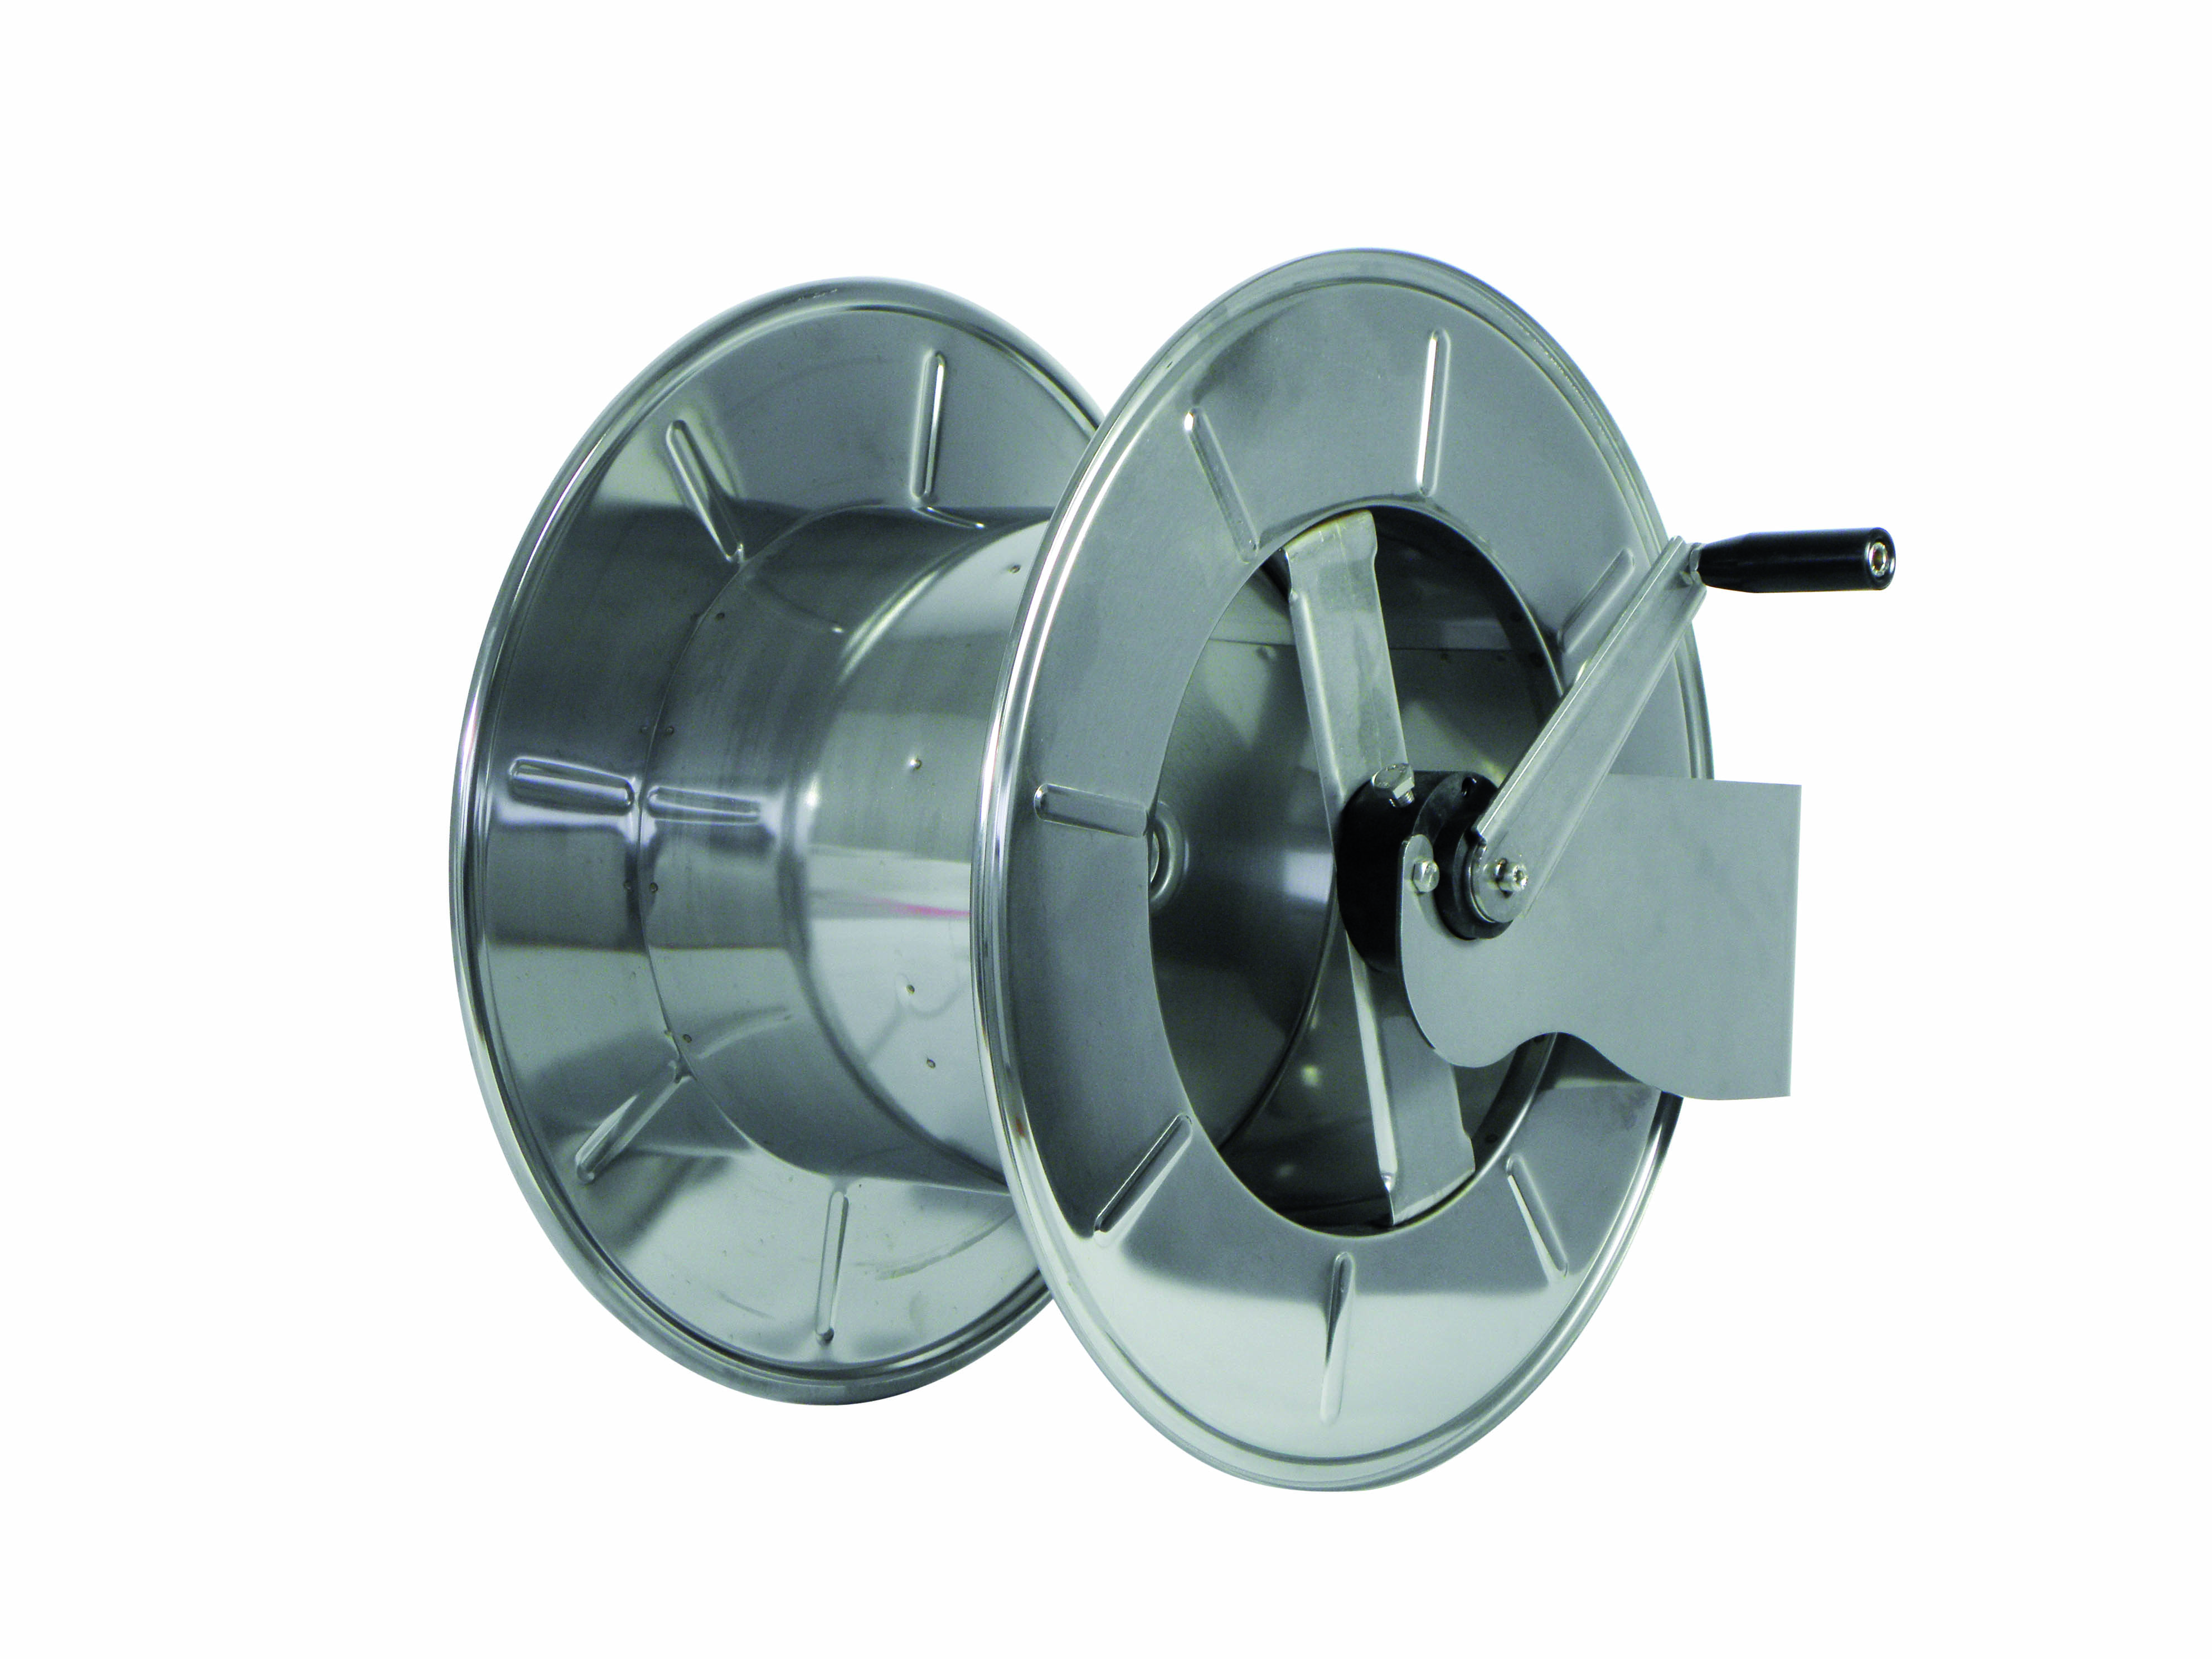 AVM9940 600 - Hose reels for Water - High Pressure up to 600 BAR/8700 PSI